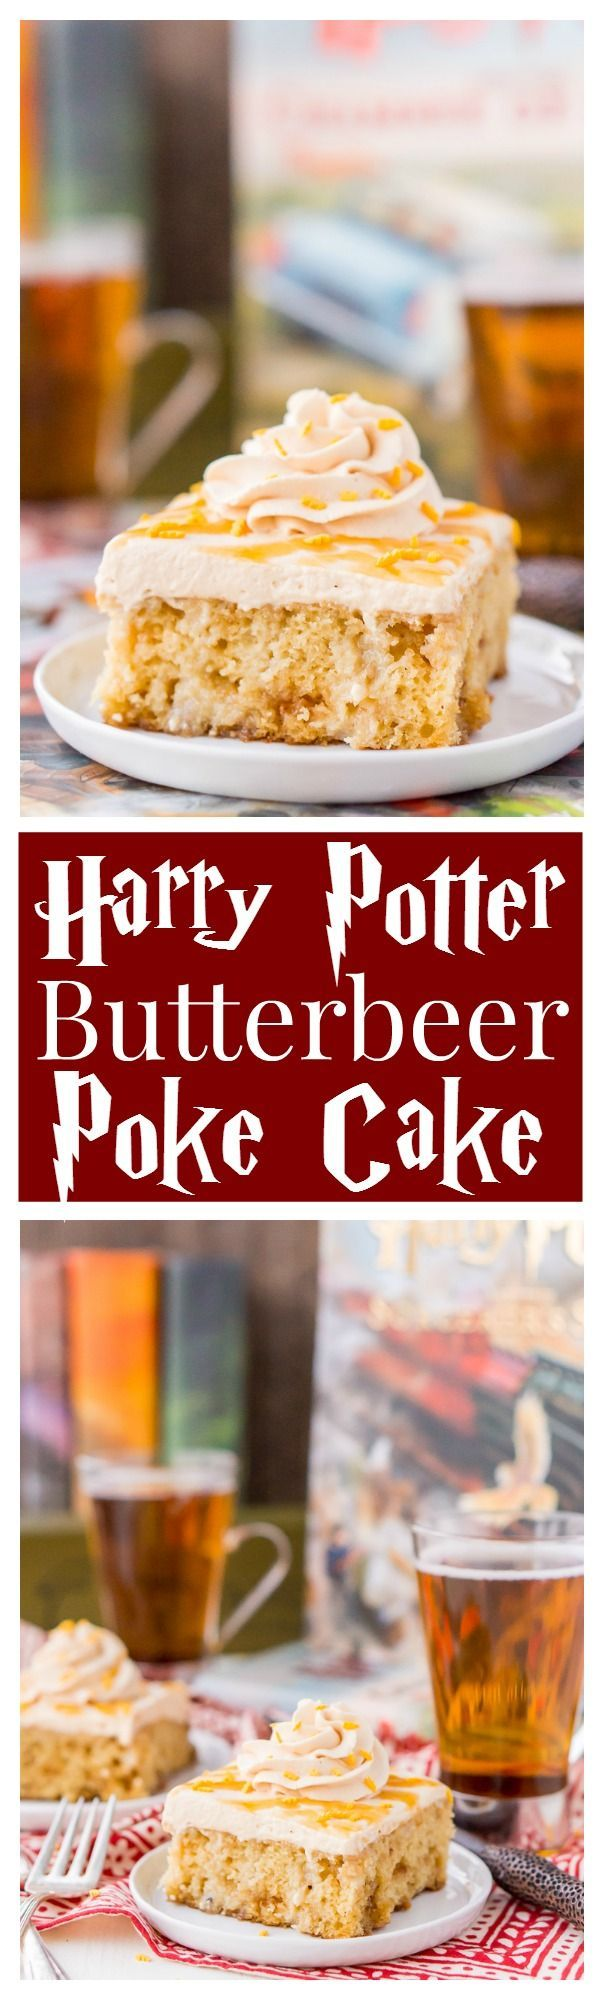 This Harry Potter Butterbeer Poke Cake is a magical, sweet, and comforting dessert every witch, wizard, and muggle will love!